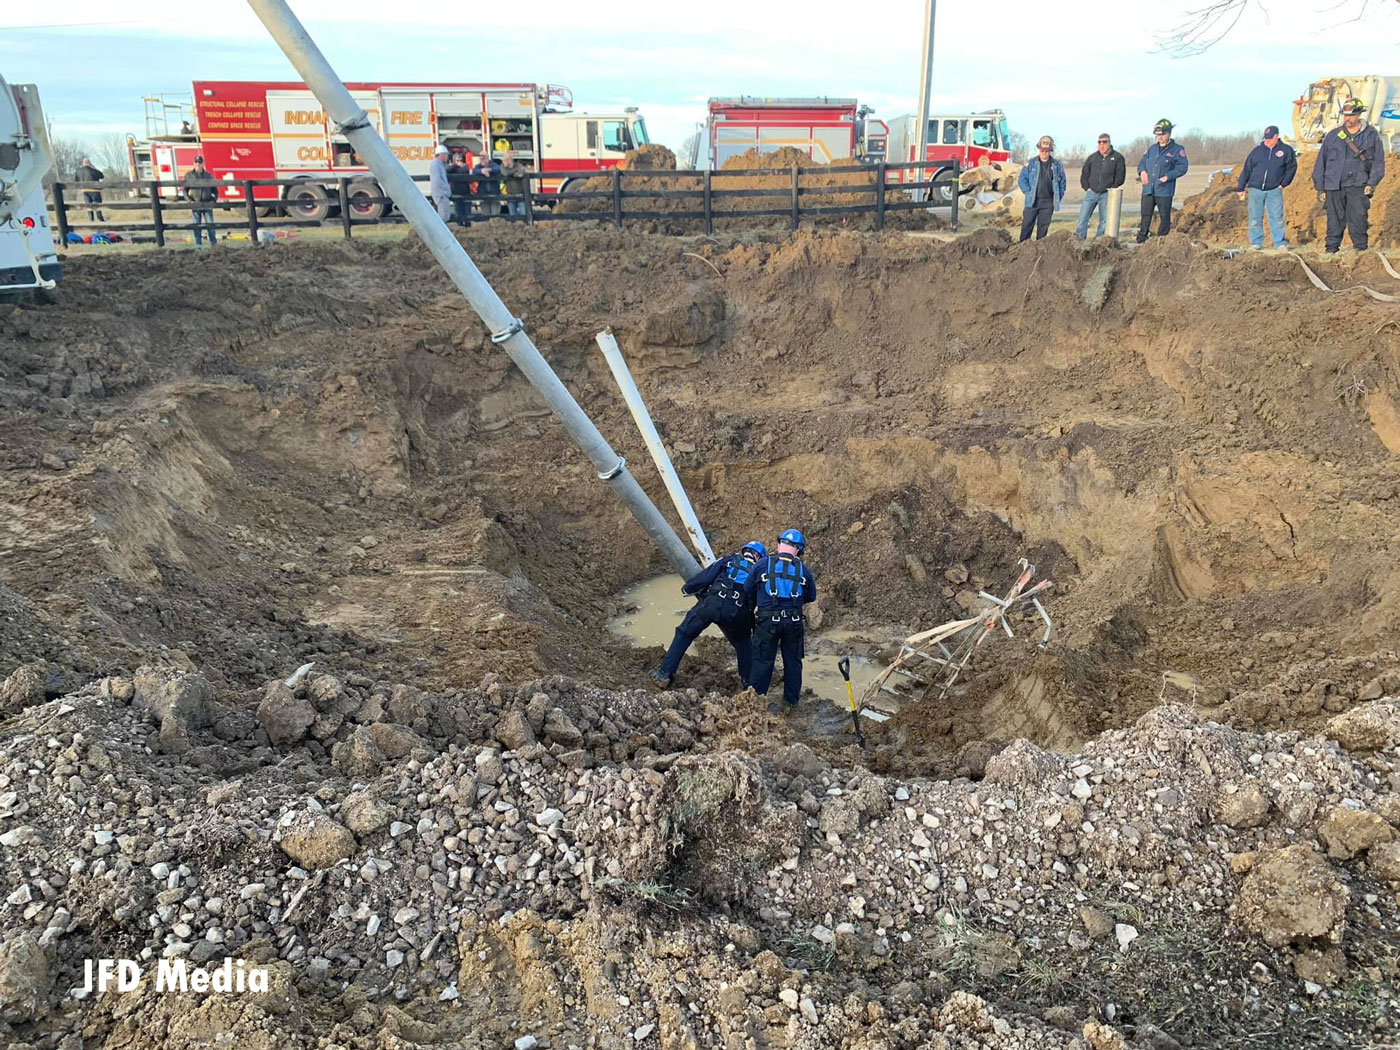 The victim was reportedly trying to dig a well on unstable ground.